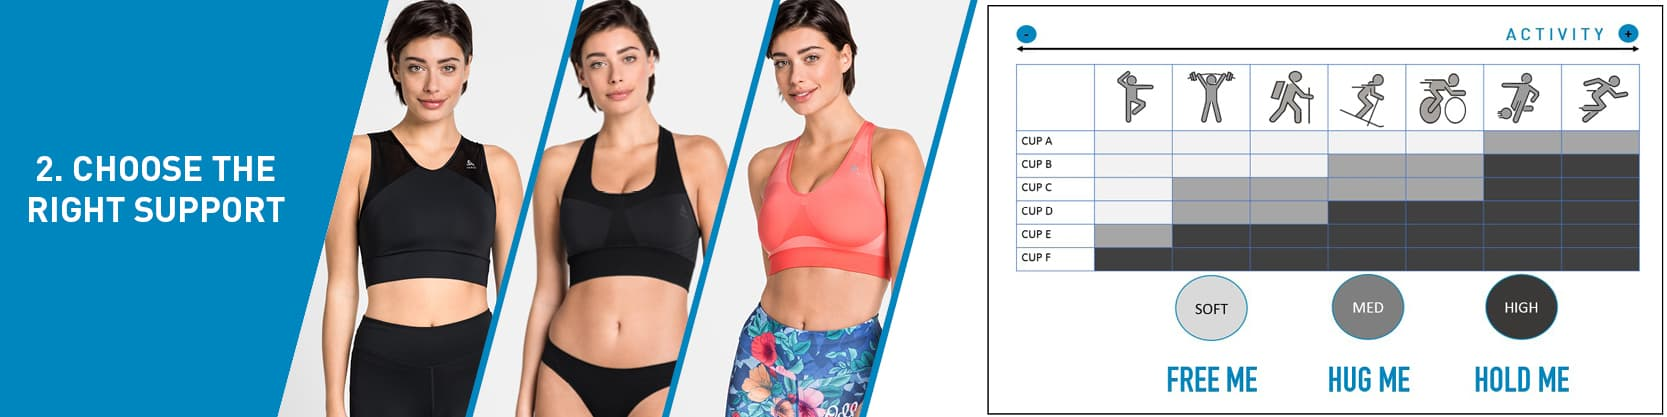 The right support with your new sports bra